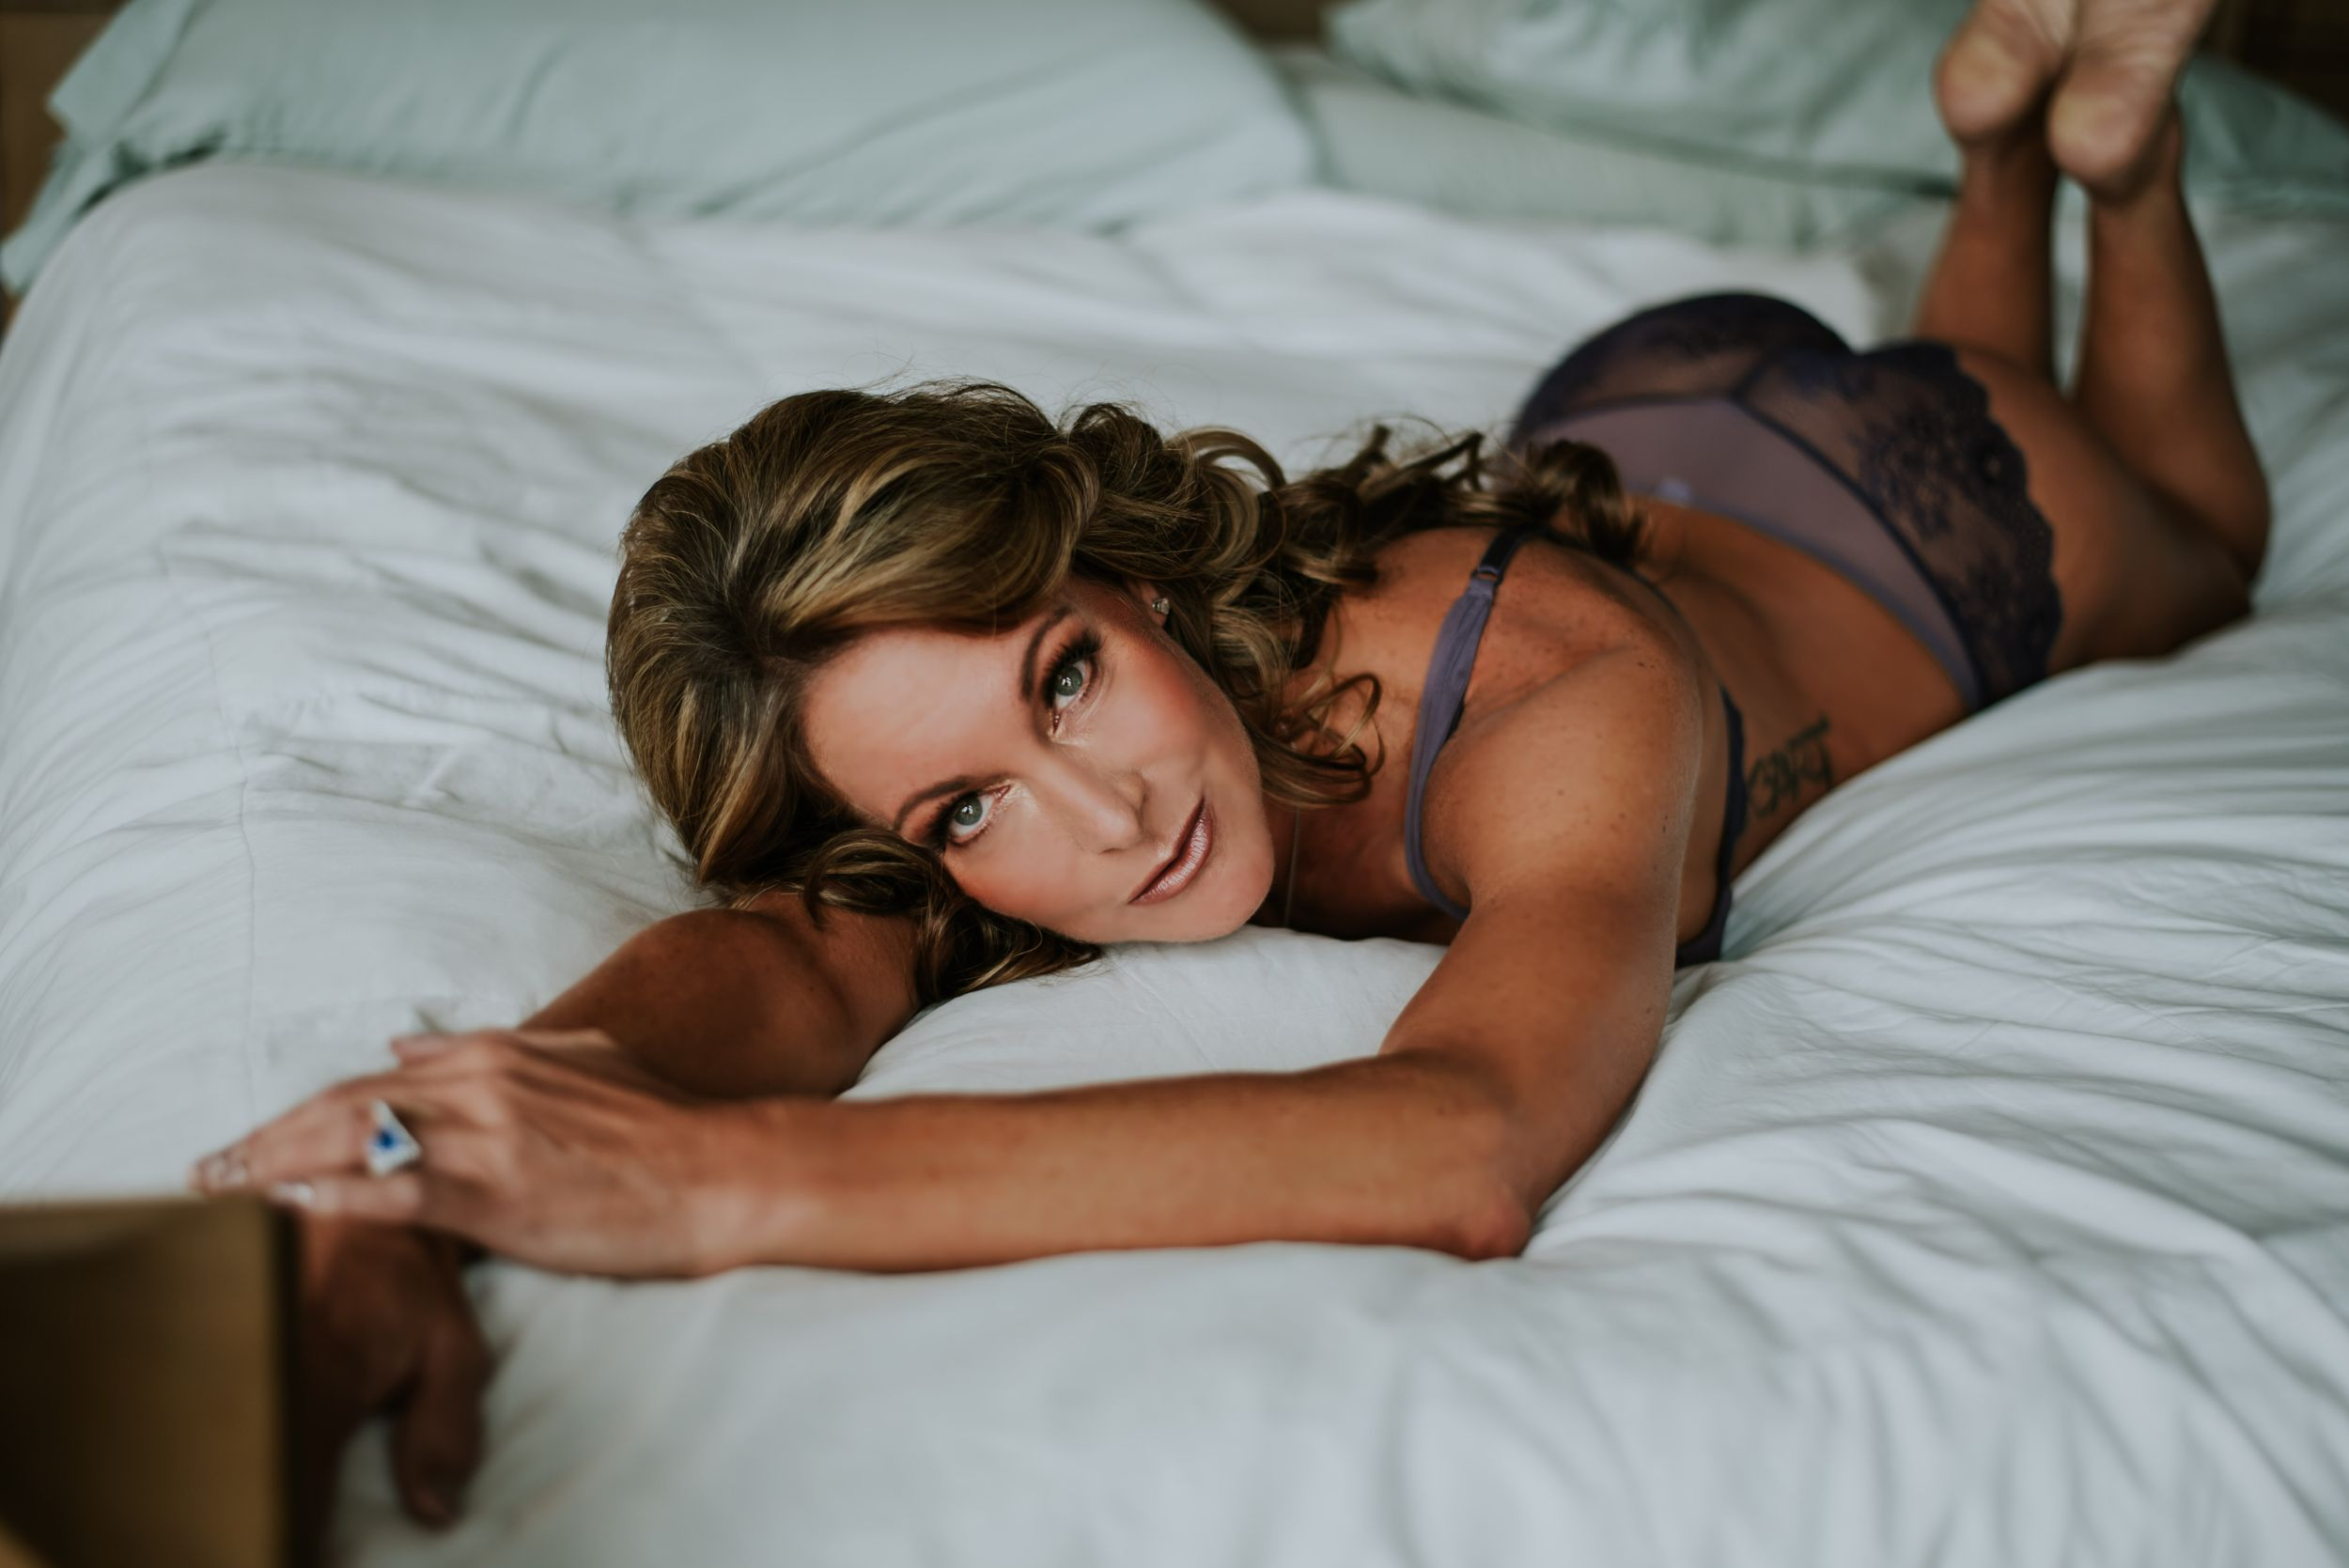 fort collins boudoir studio, loveland boudoir photographer, cheyenne boudoir photographer, fort collins boudoir photos